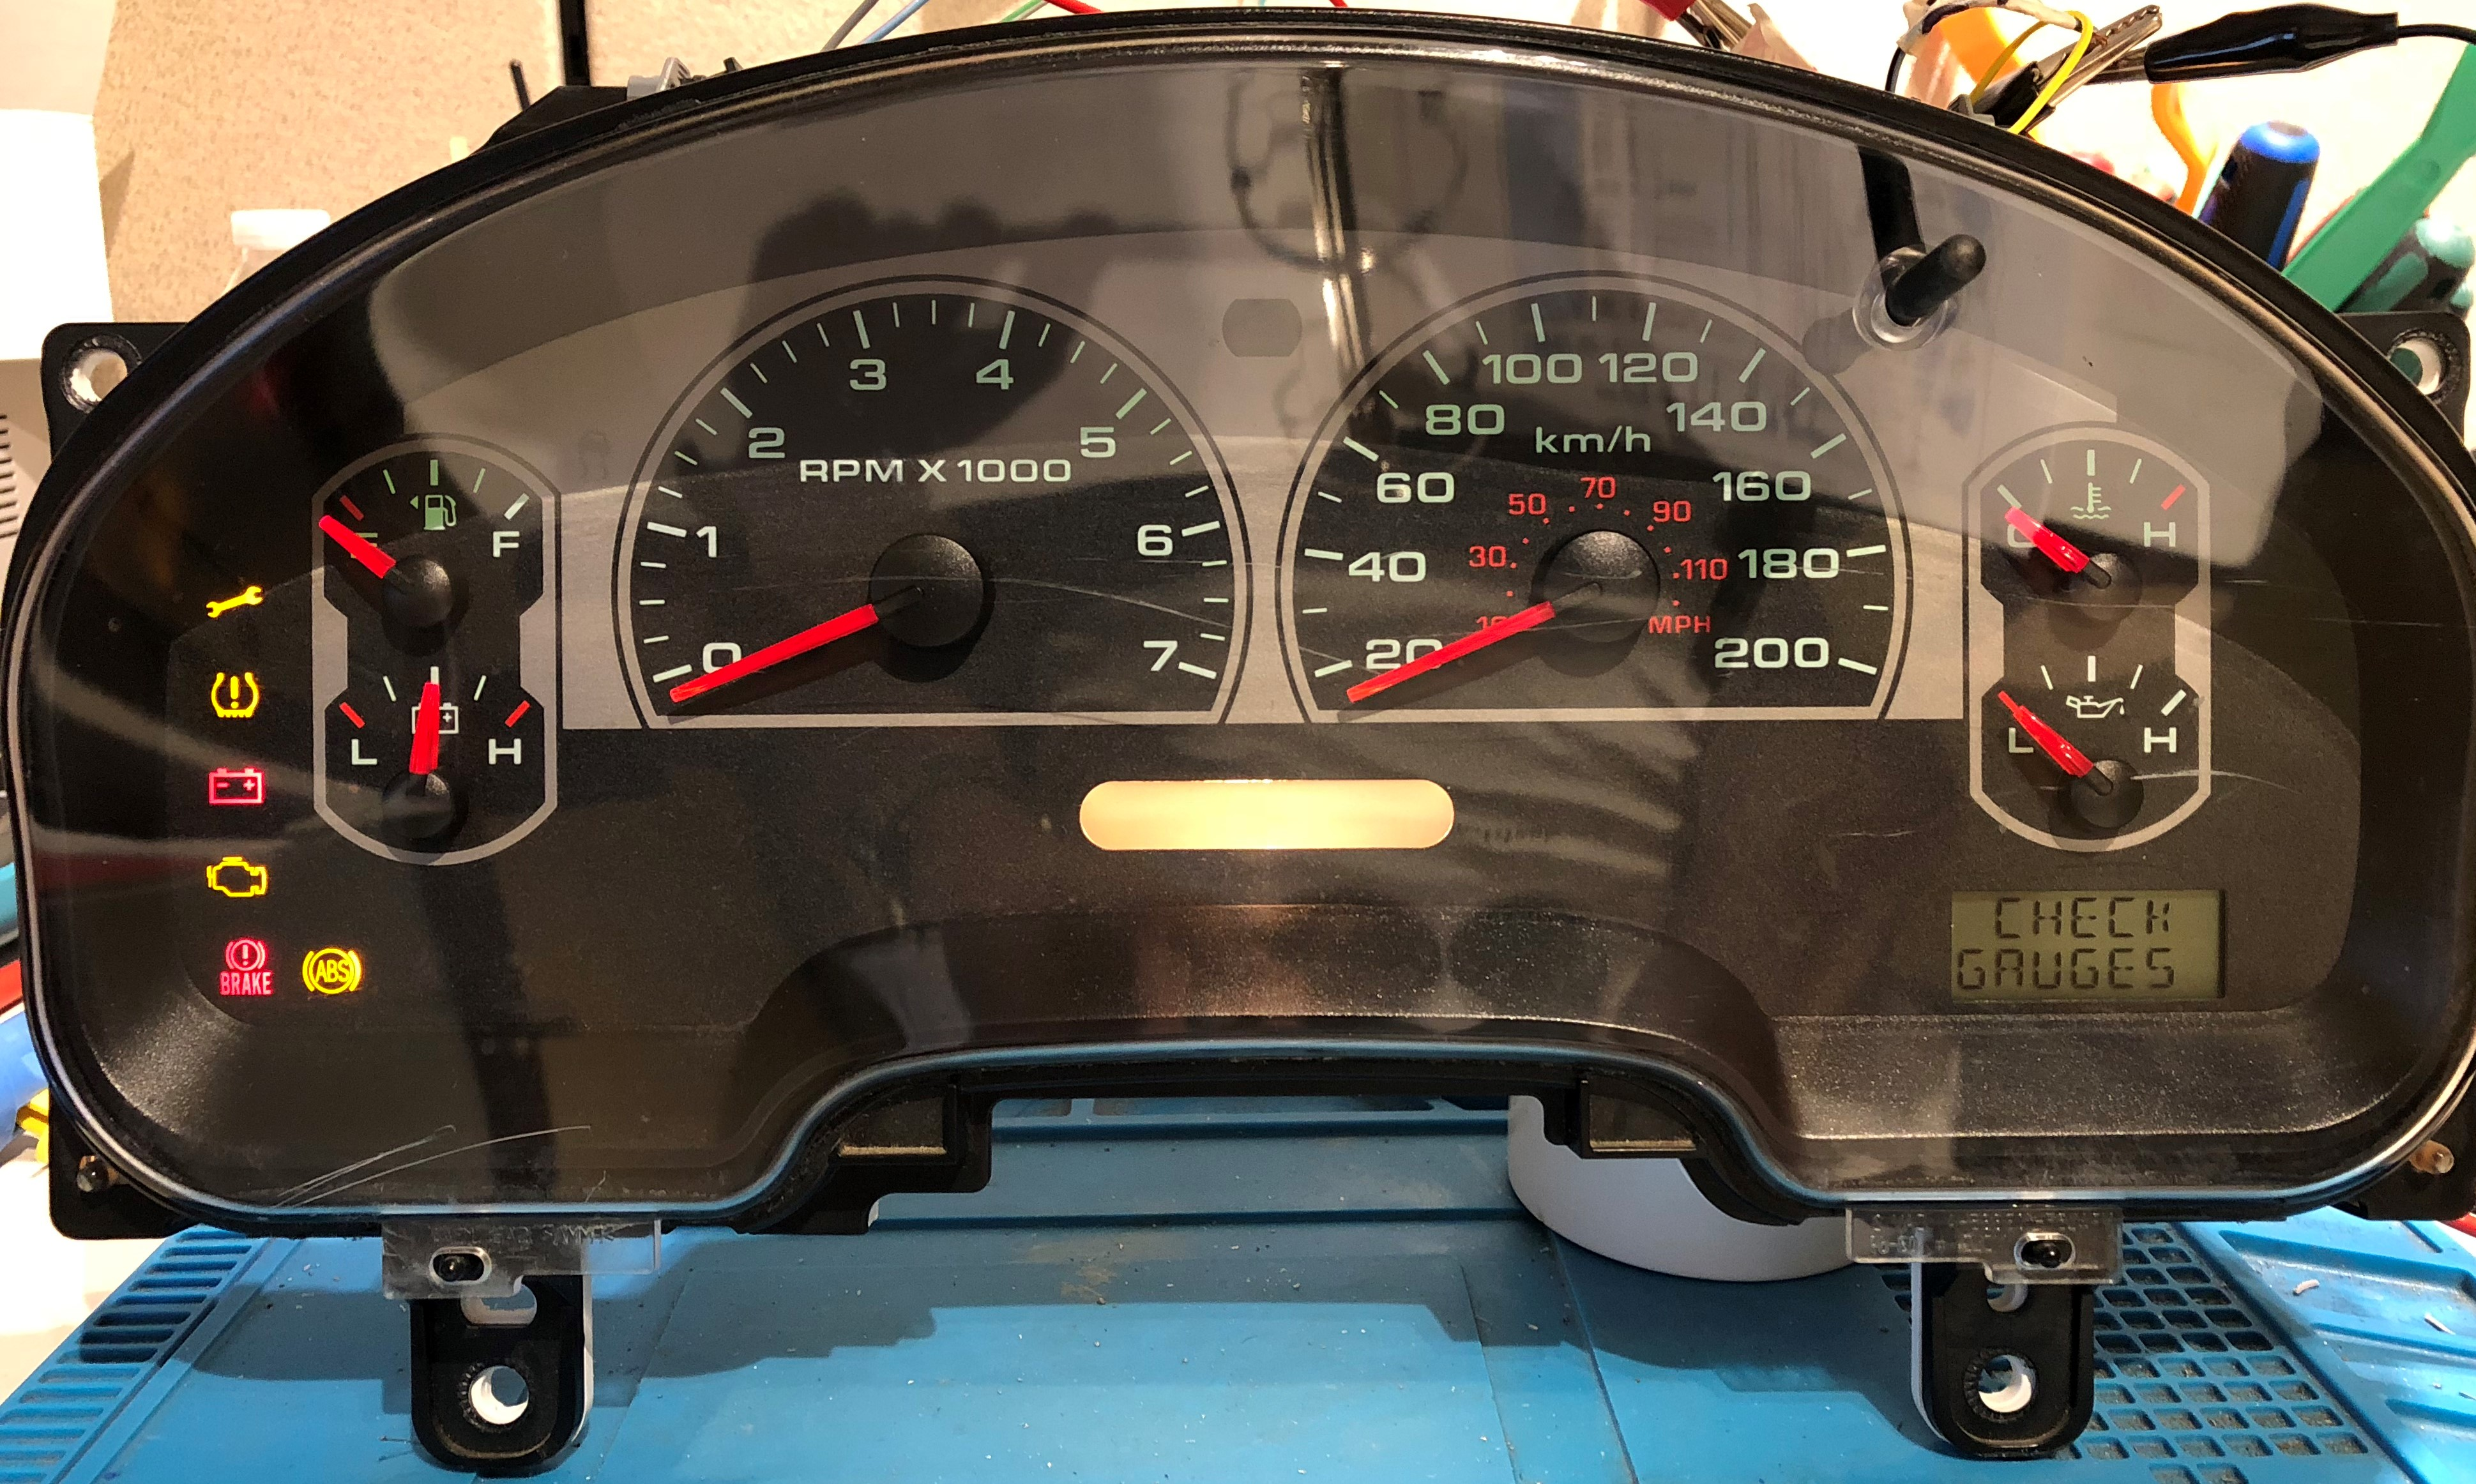 2007 FORD F150 USED DASHBOARD INSTRUMENT CLUSTER FOR SALE (MPH)